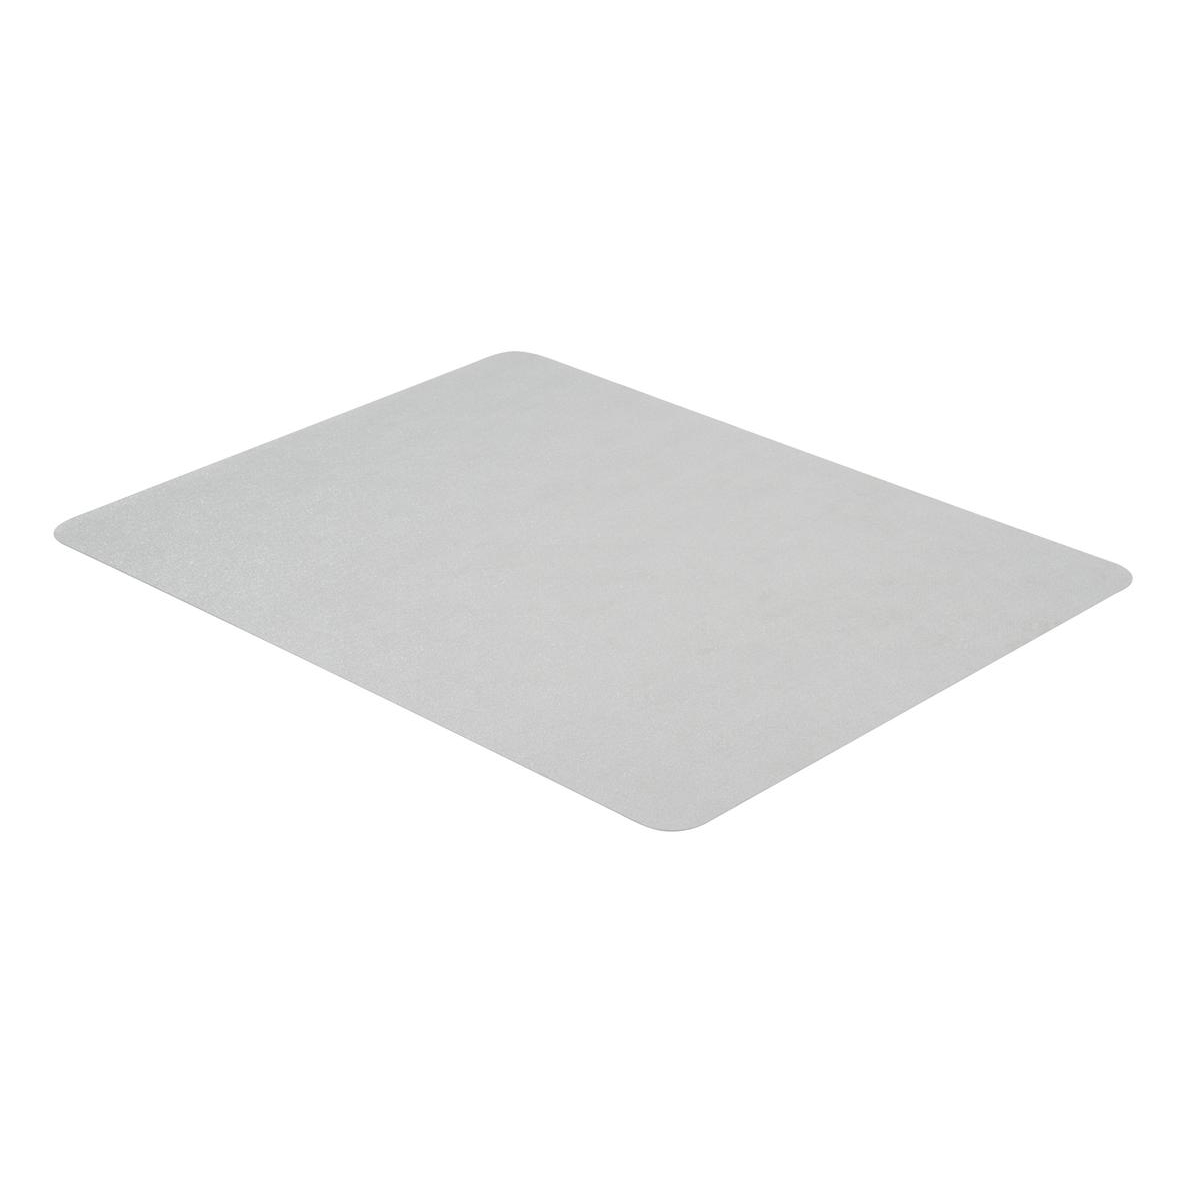 Cleartex Valuemat Chair Mat PVC Rectangular For Carpets 1200x750mm Clear Ref FC1175120EV